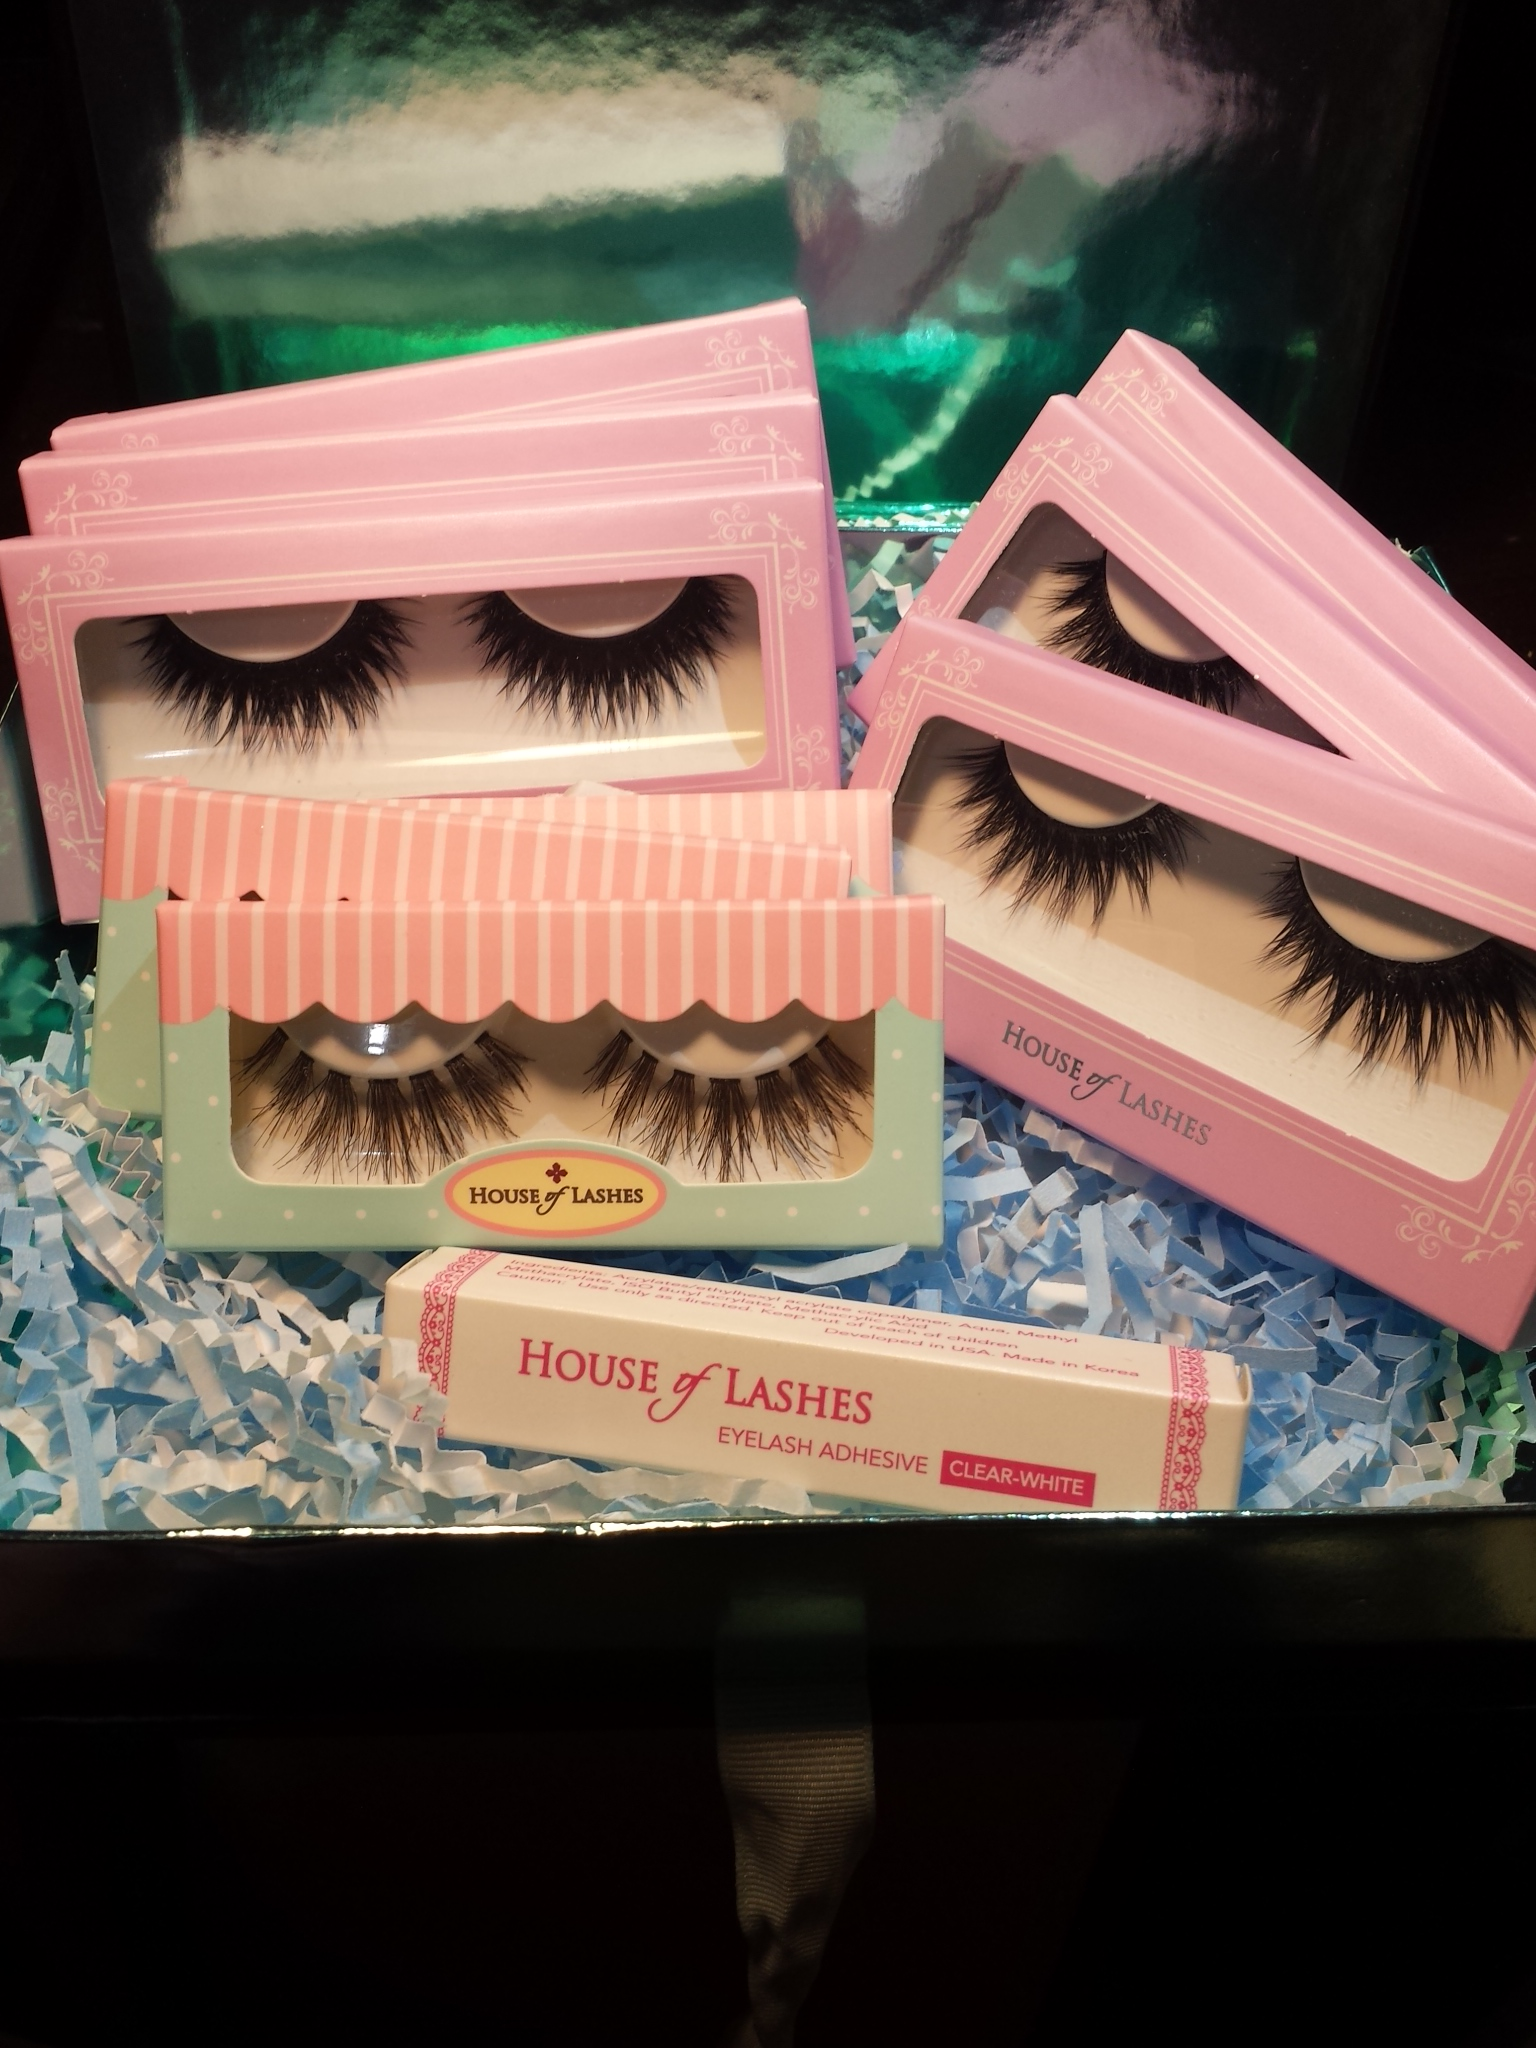 SEPHORA COLLECTION House of Lashes(R) Eyelash Adhesive Black 0.14 oz/ 4 mL uploaded by Victoria L.